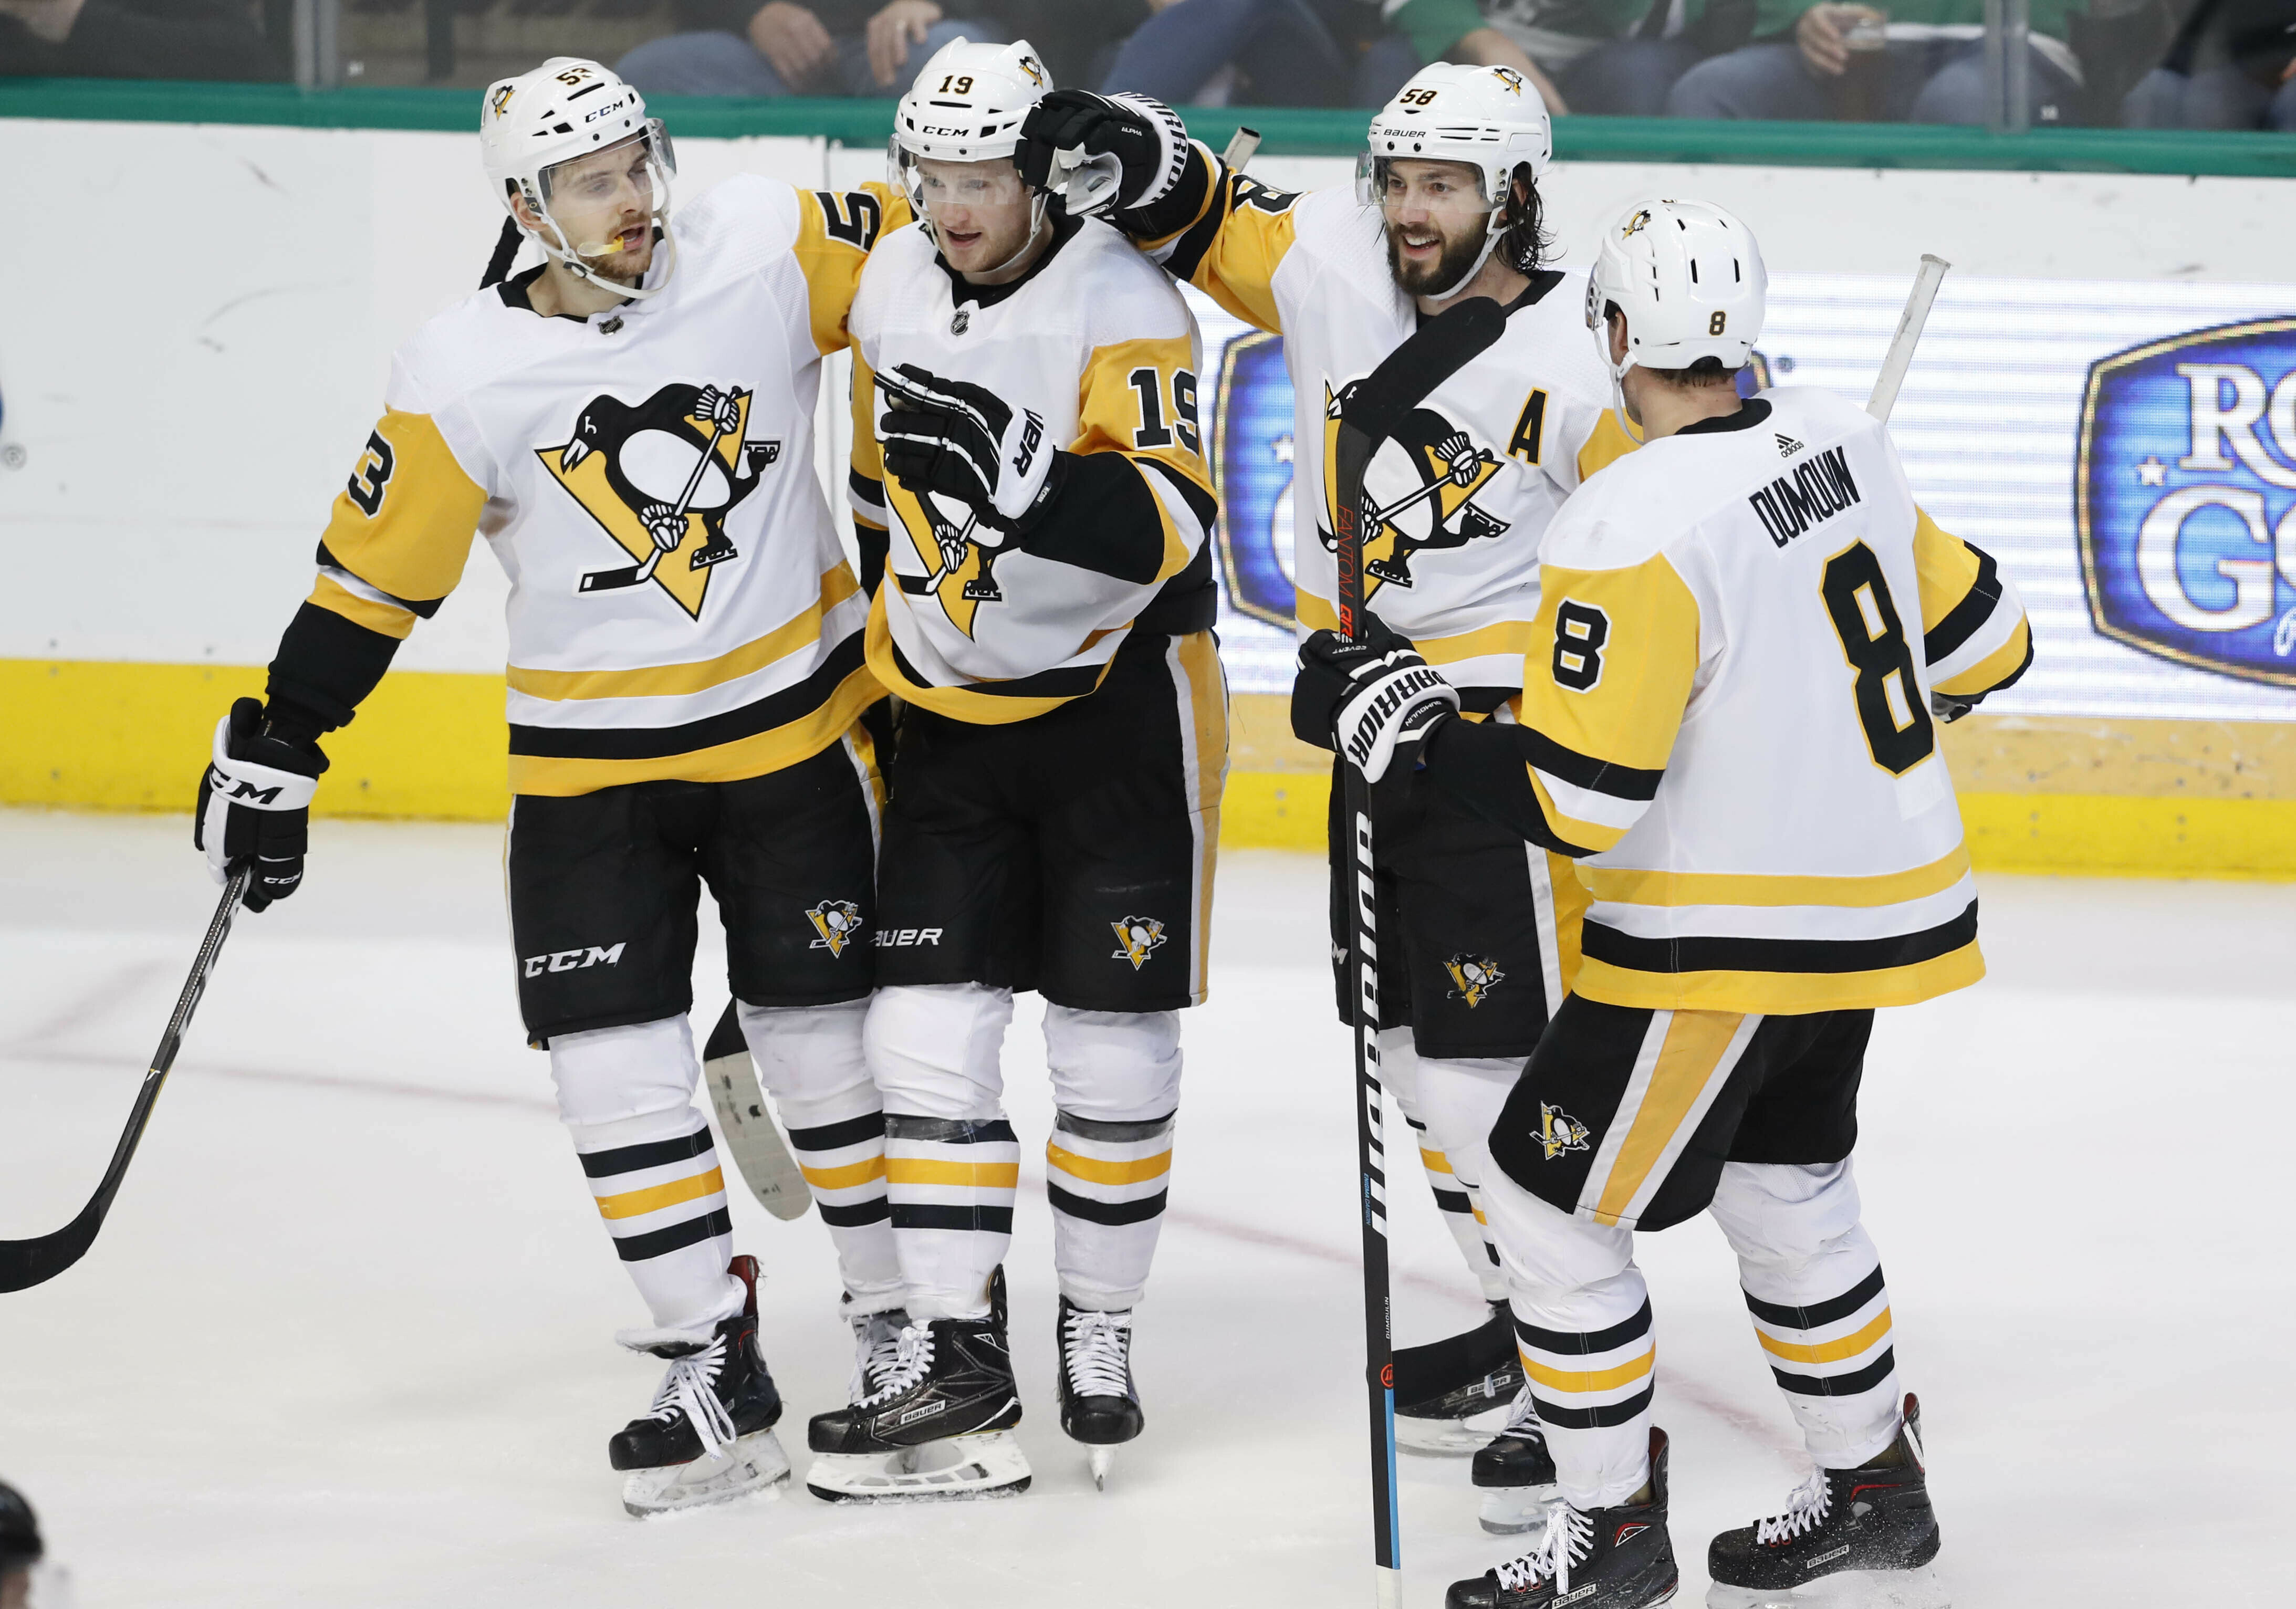 McCann scores twice to help Penguins hold off Stars, 3-2